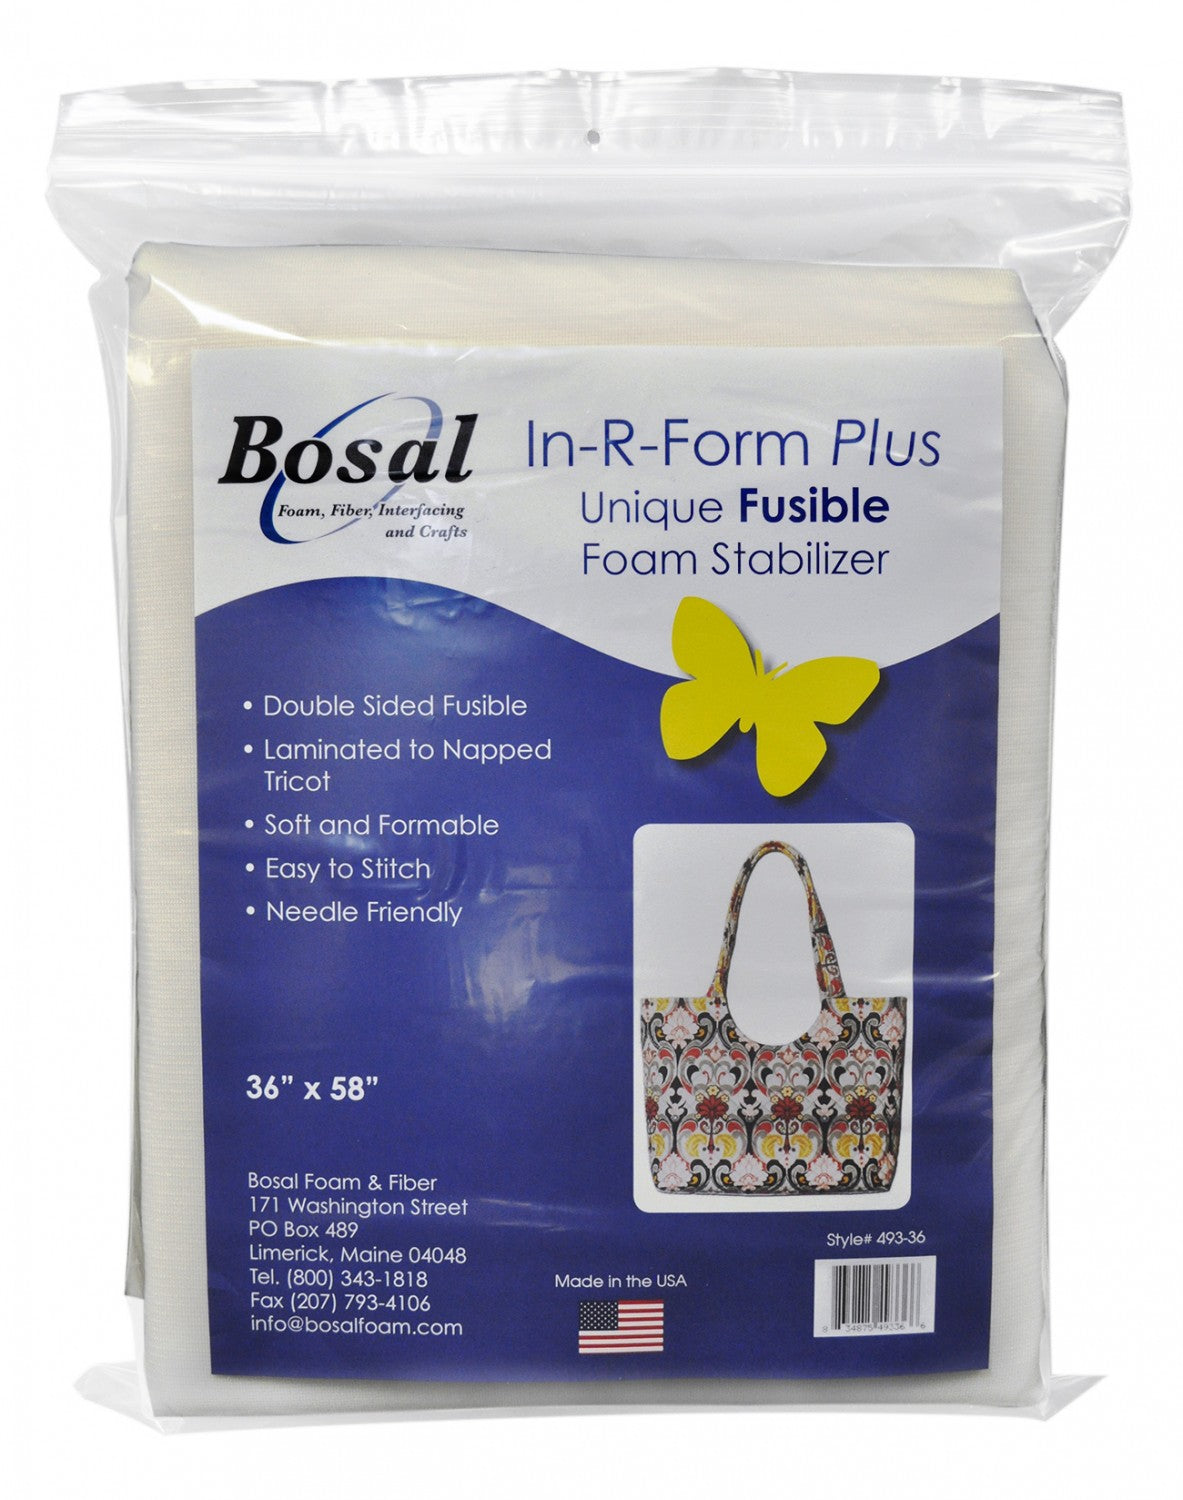 Form R Double Sided Foam Stabilizer